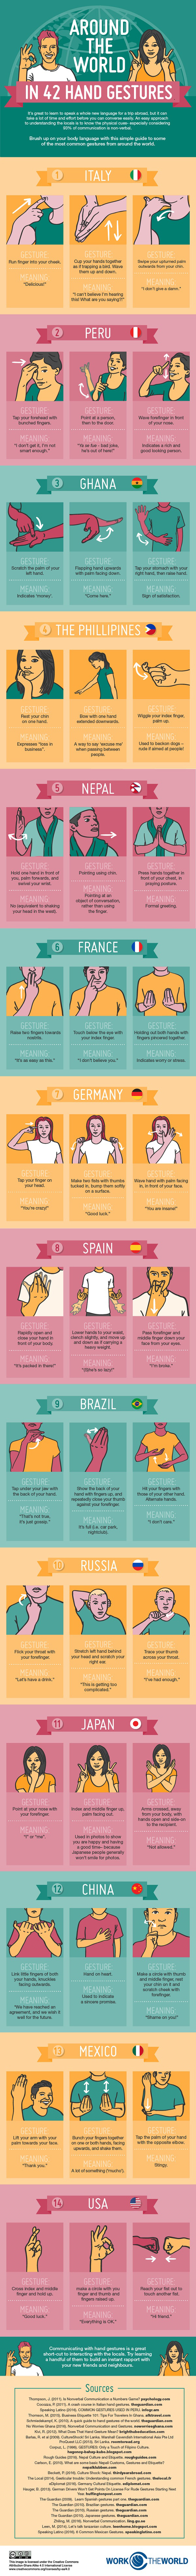 hand gestures around the world and their meanings